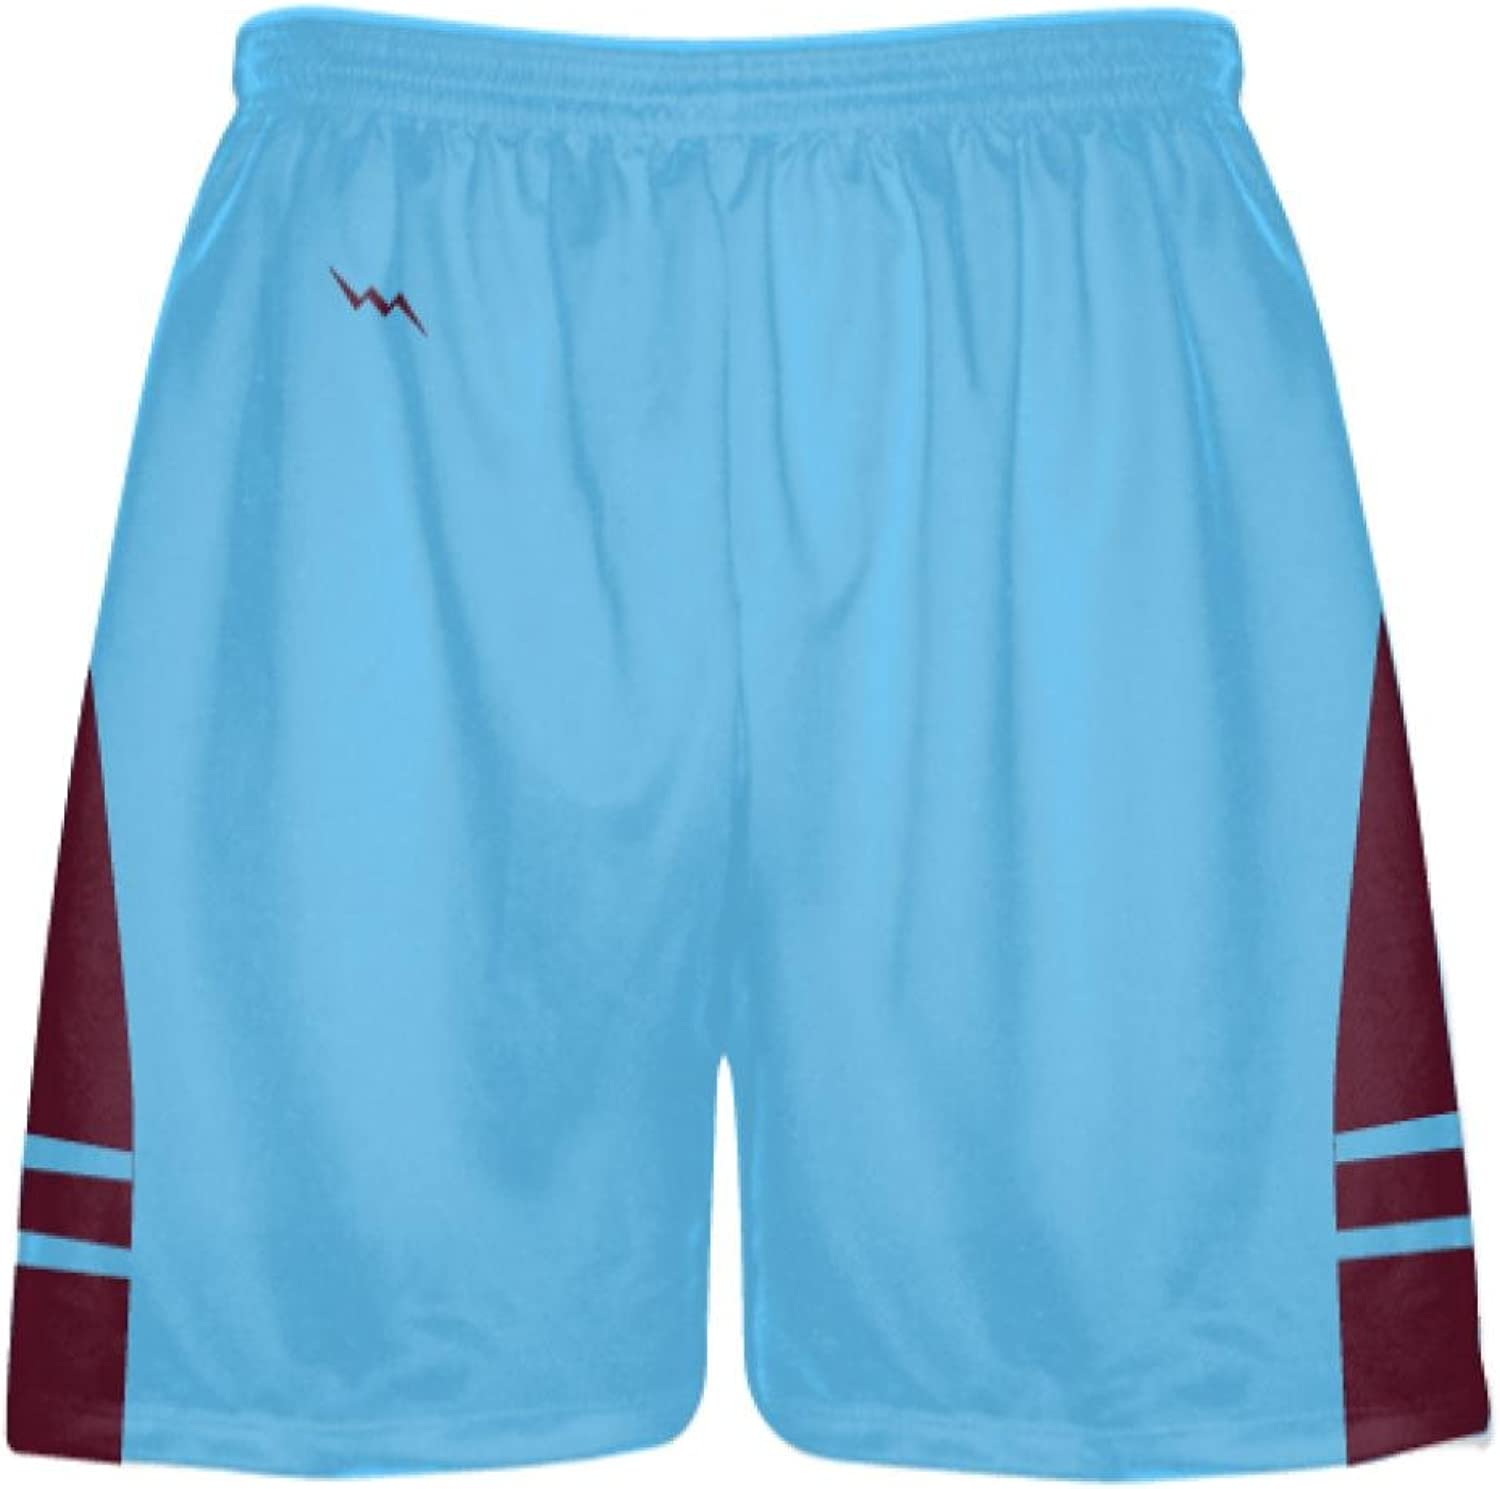 LightningWear Powder blueee Maroon Lacrosse Shorts  Mens Boy Lacrosse Shorts